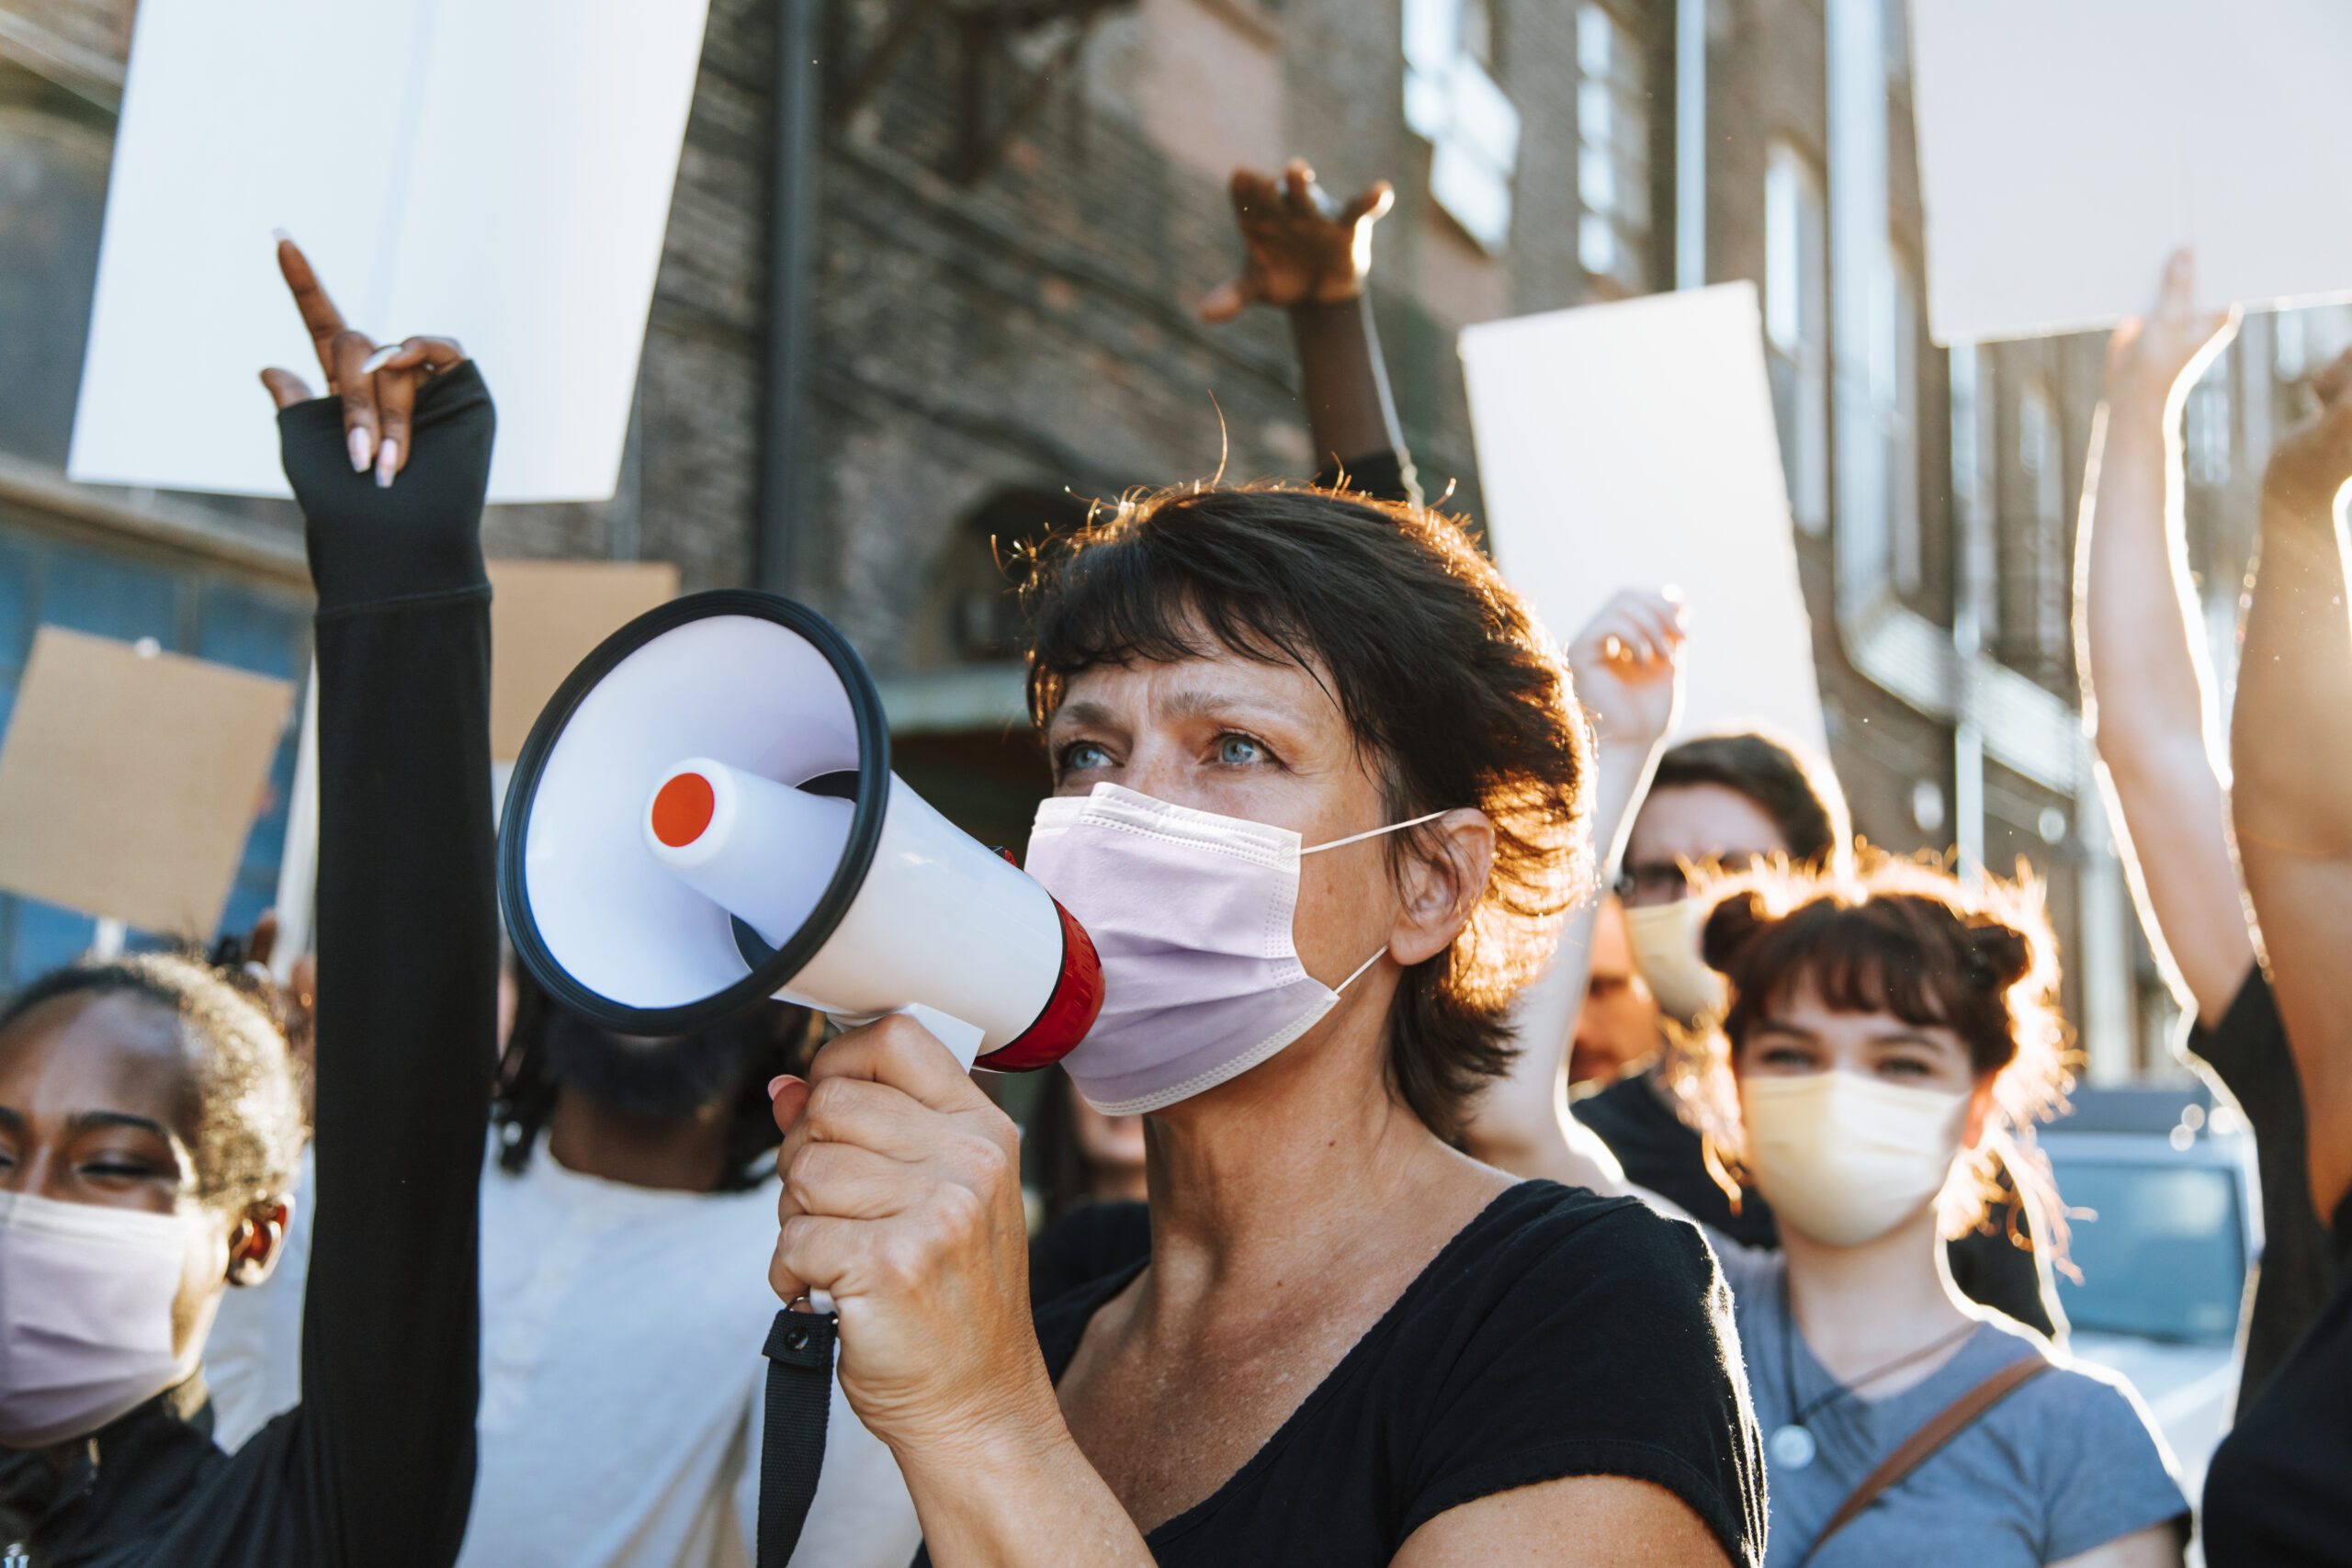 Diverse people wearing mask protesting during COVID-19 pandemic